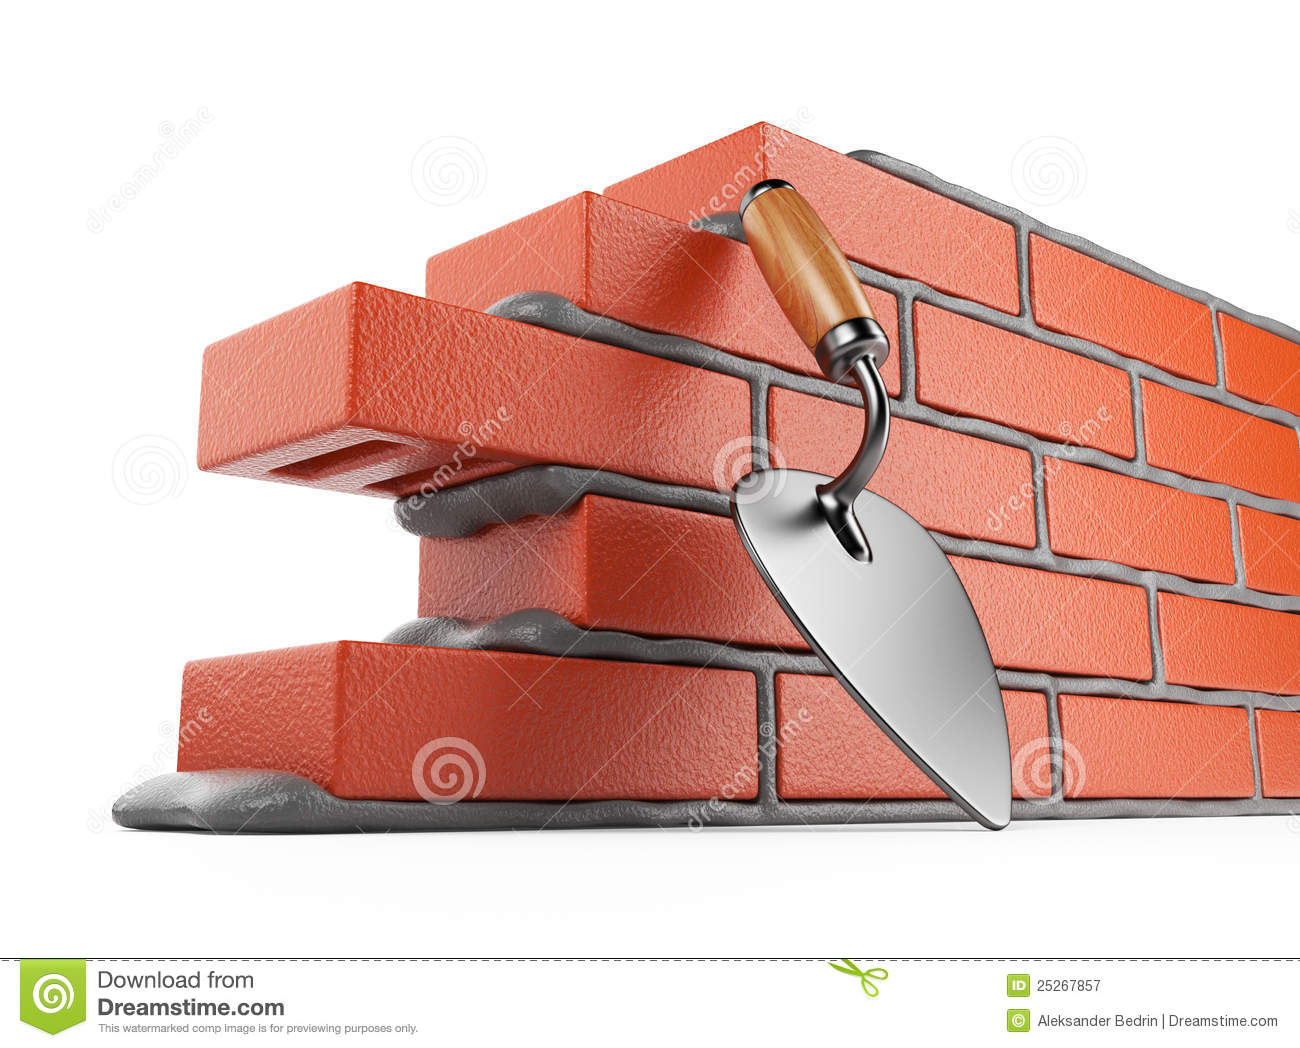 Masonry Trowel Sillouhette : Trowel and bricks wall d work place isolated stock